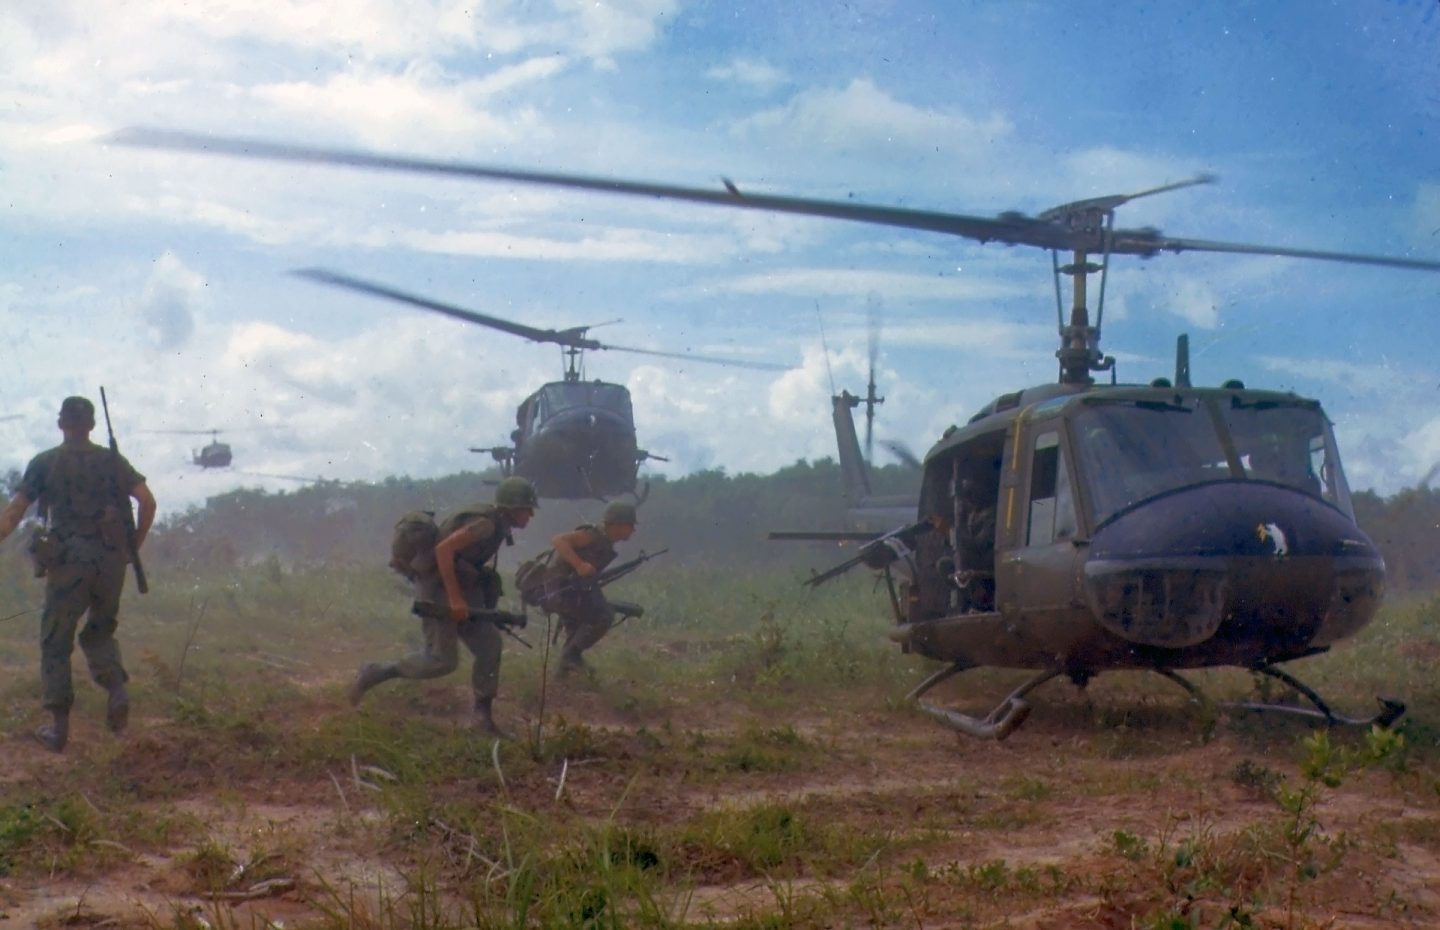 Soldiers running for the door of a helicopter in the movie Danger Close: The Battle of Long Tan